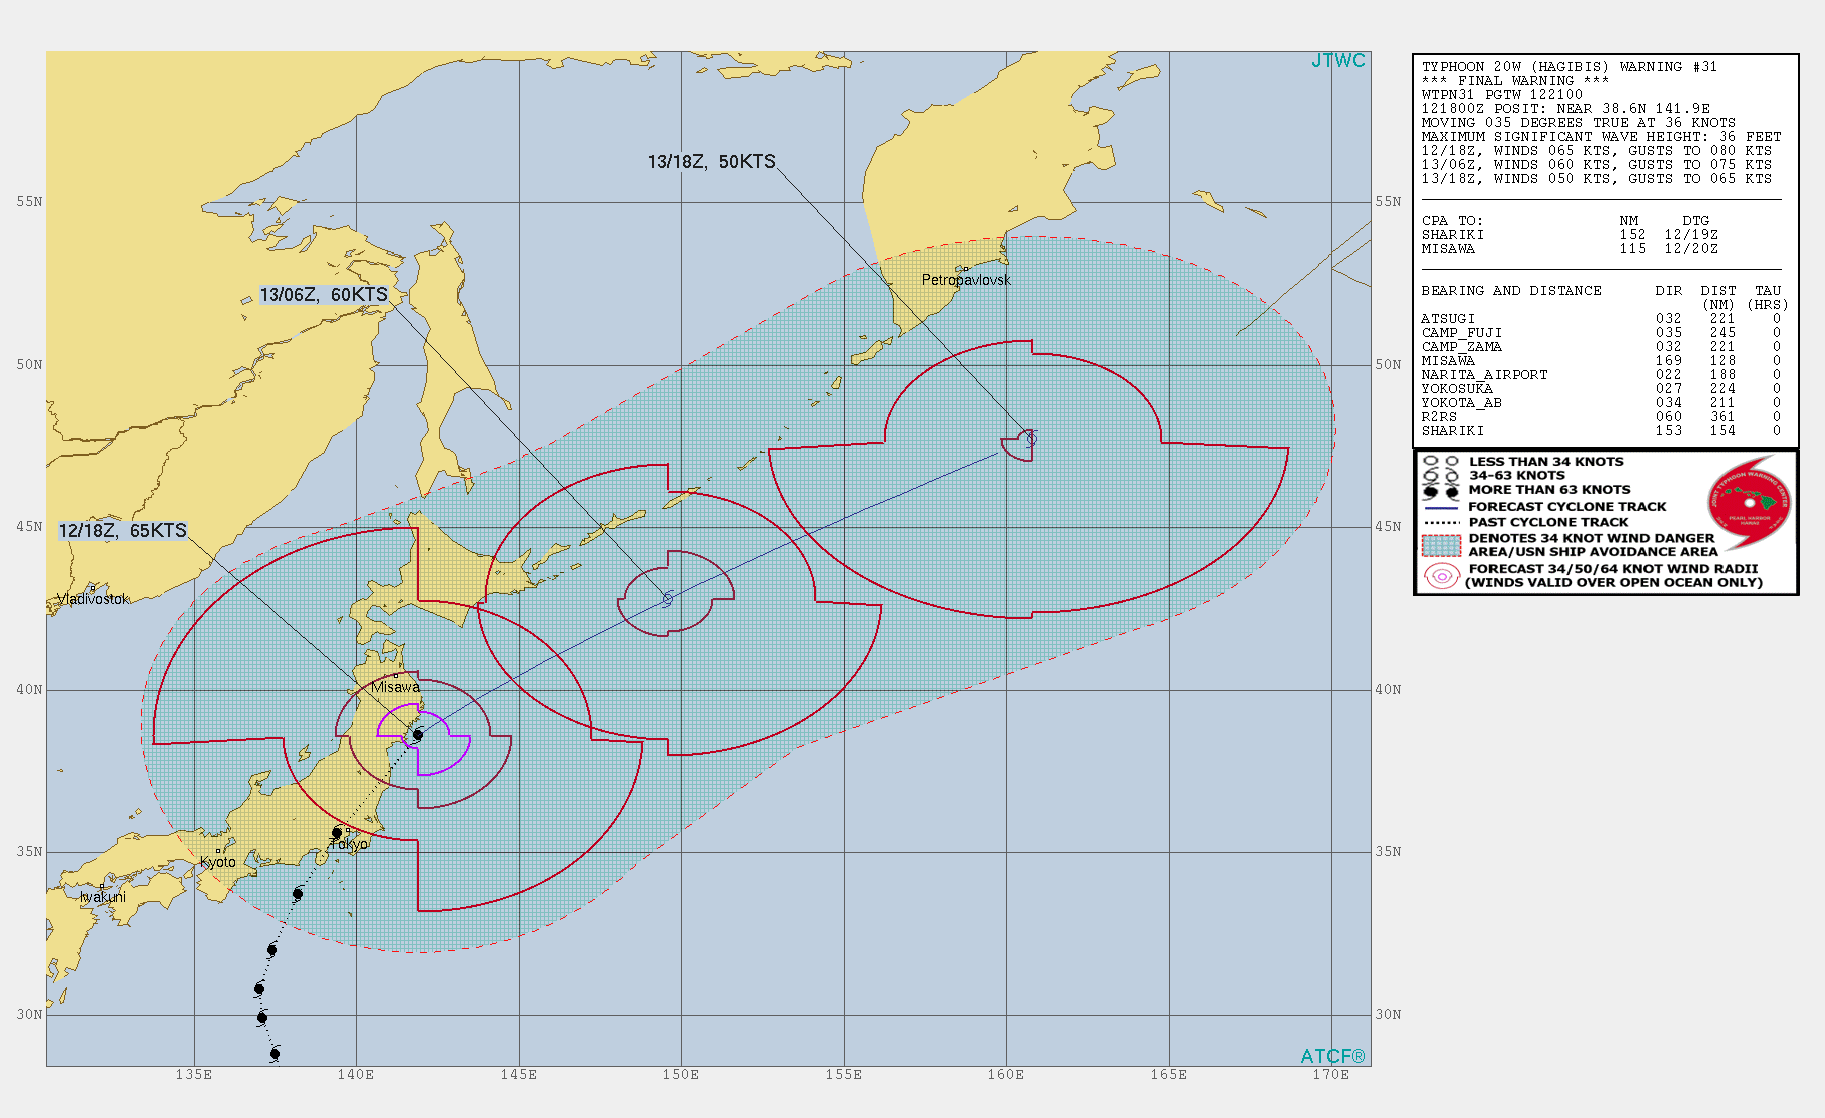 photo:JTWC;desc:The final TY Hagibis (20W) Warning;